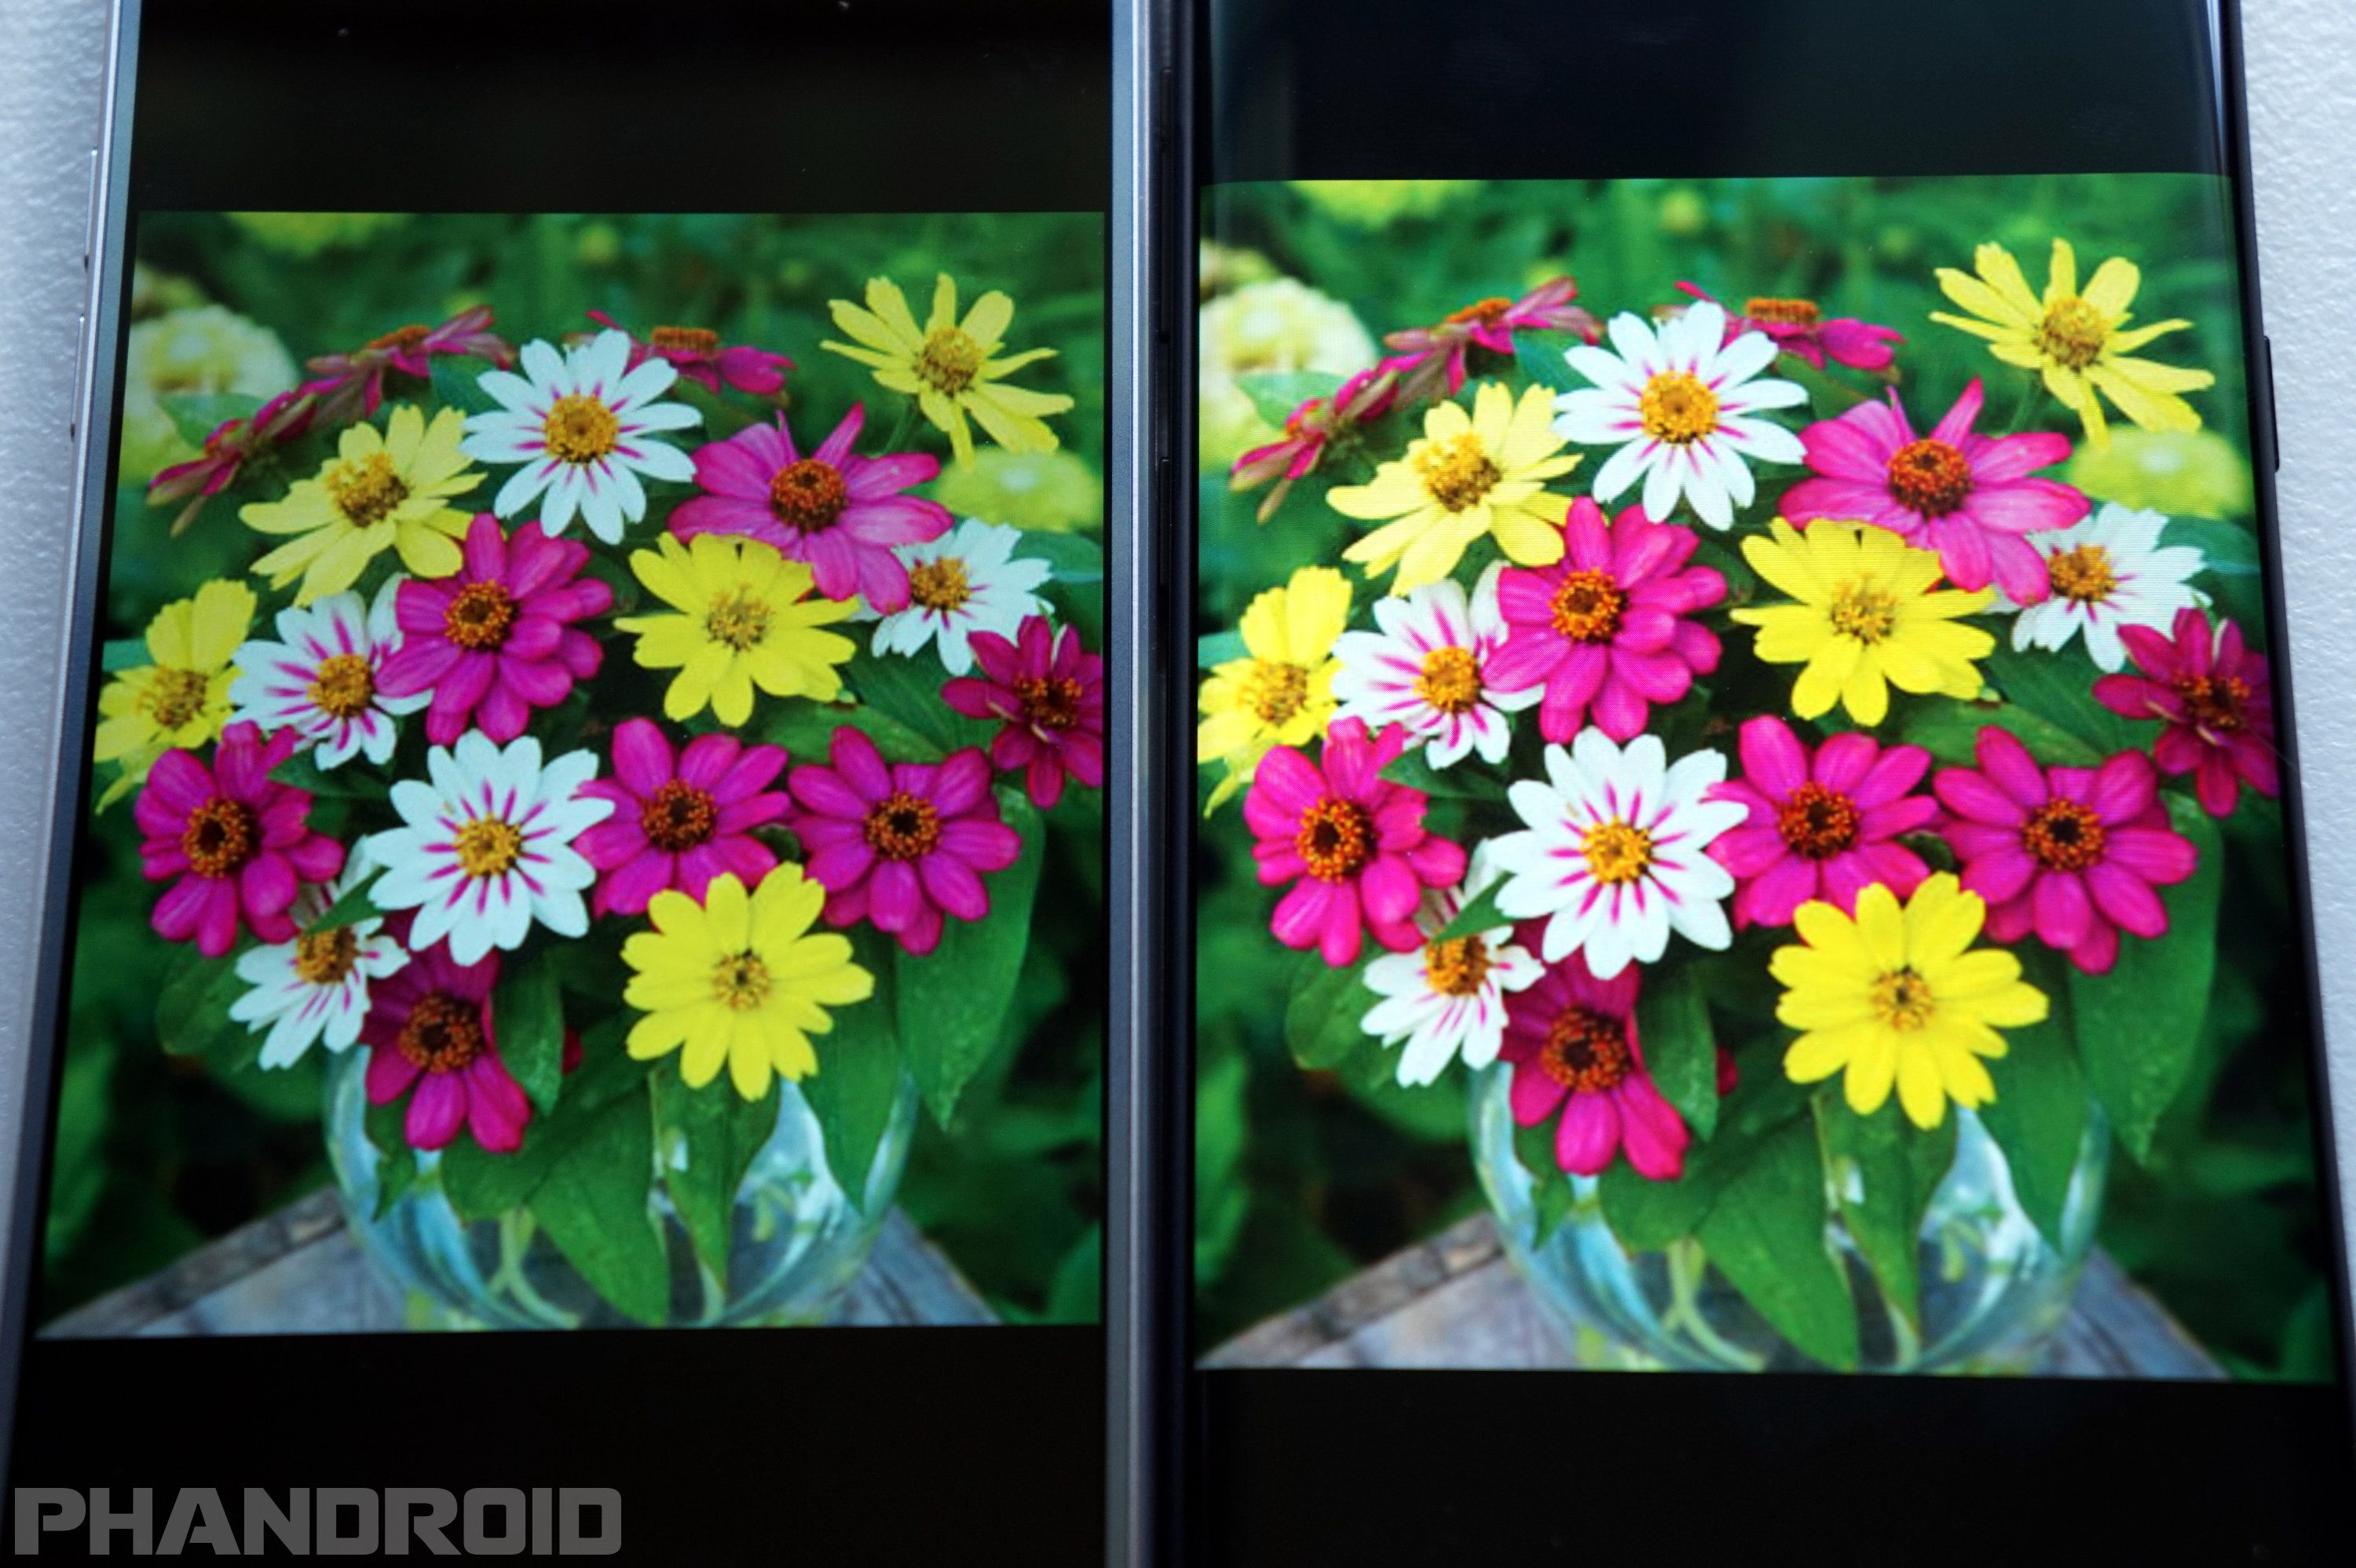 What's the difference between AMOLED and LCD displays?